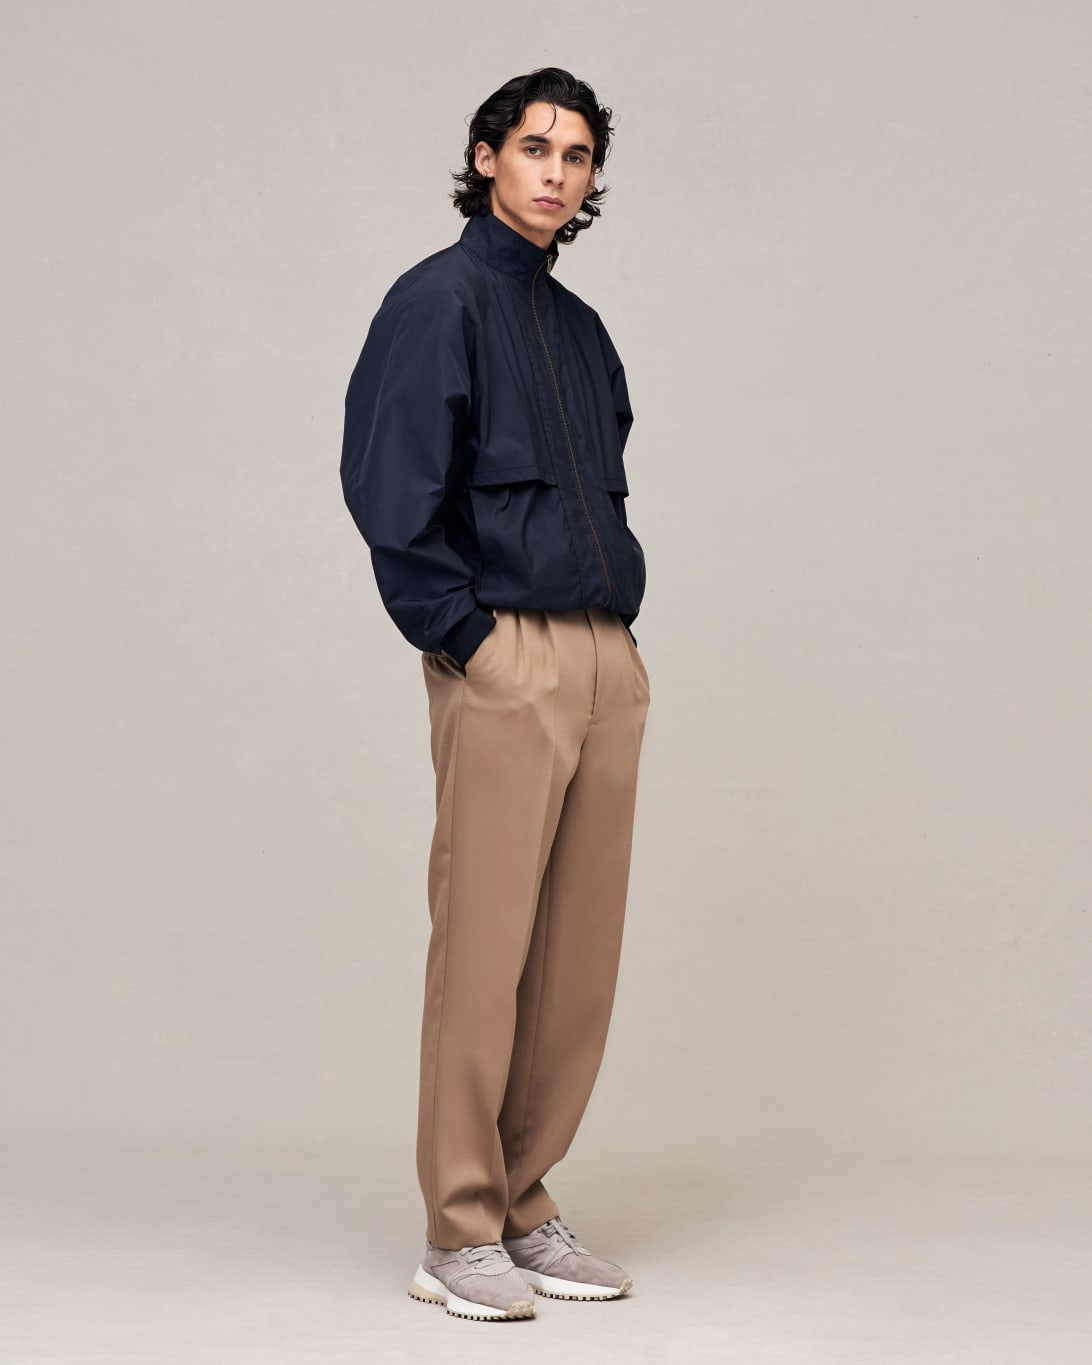 Seventh Collection | Fall/Winter Lookbook Look 20